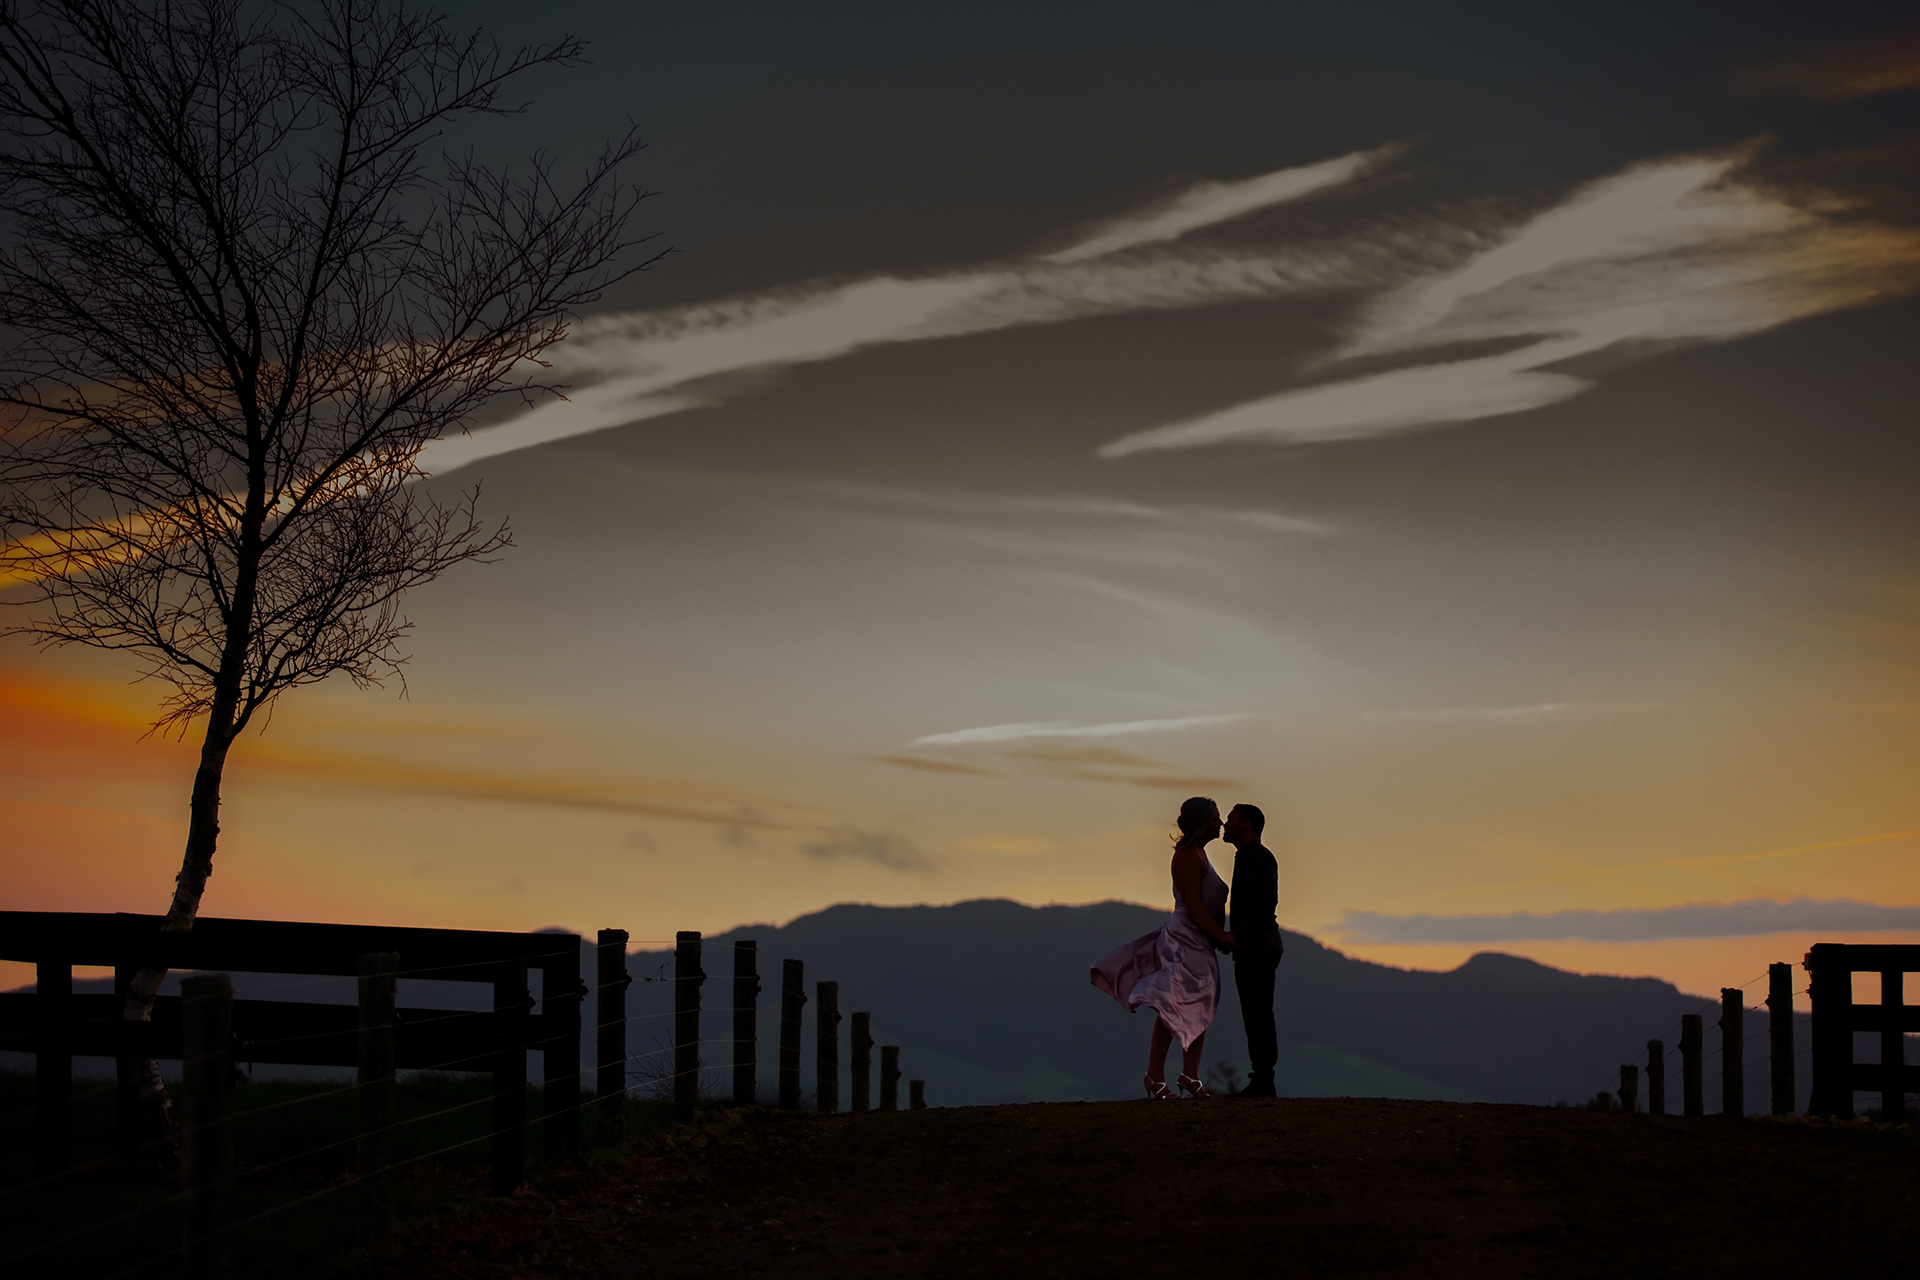 A wedding photo taken at sunset of a Bride and Groom spending time together before heading into their wedding reception. This photo was taken by Mala Photography, an Auckland wedding photographer. This photo was taken at The Red Barn, a beautiful wedding venue near Auckland.